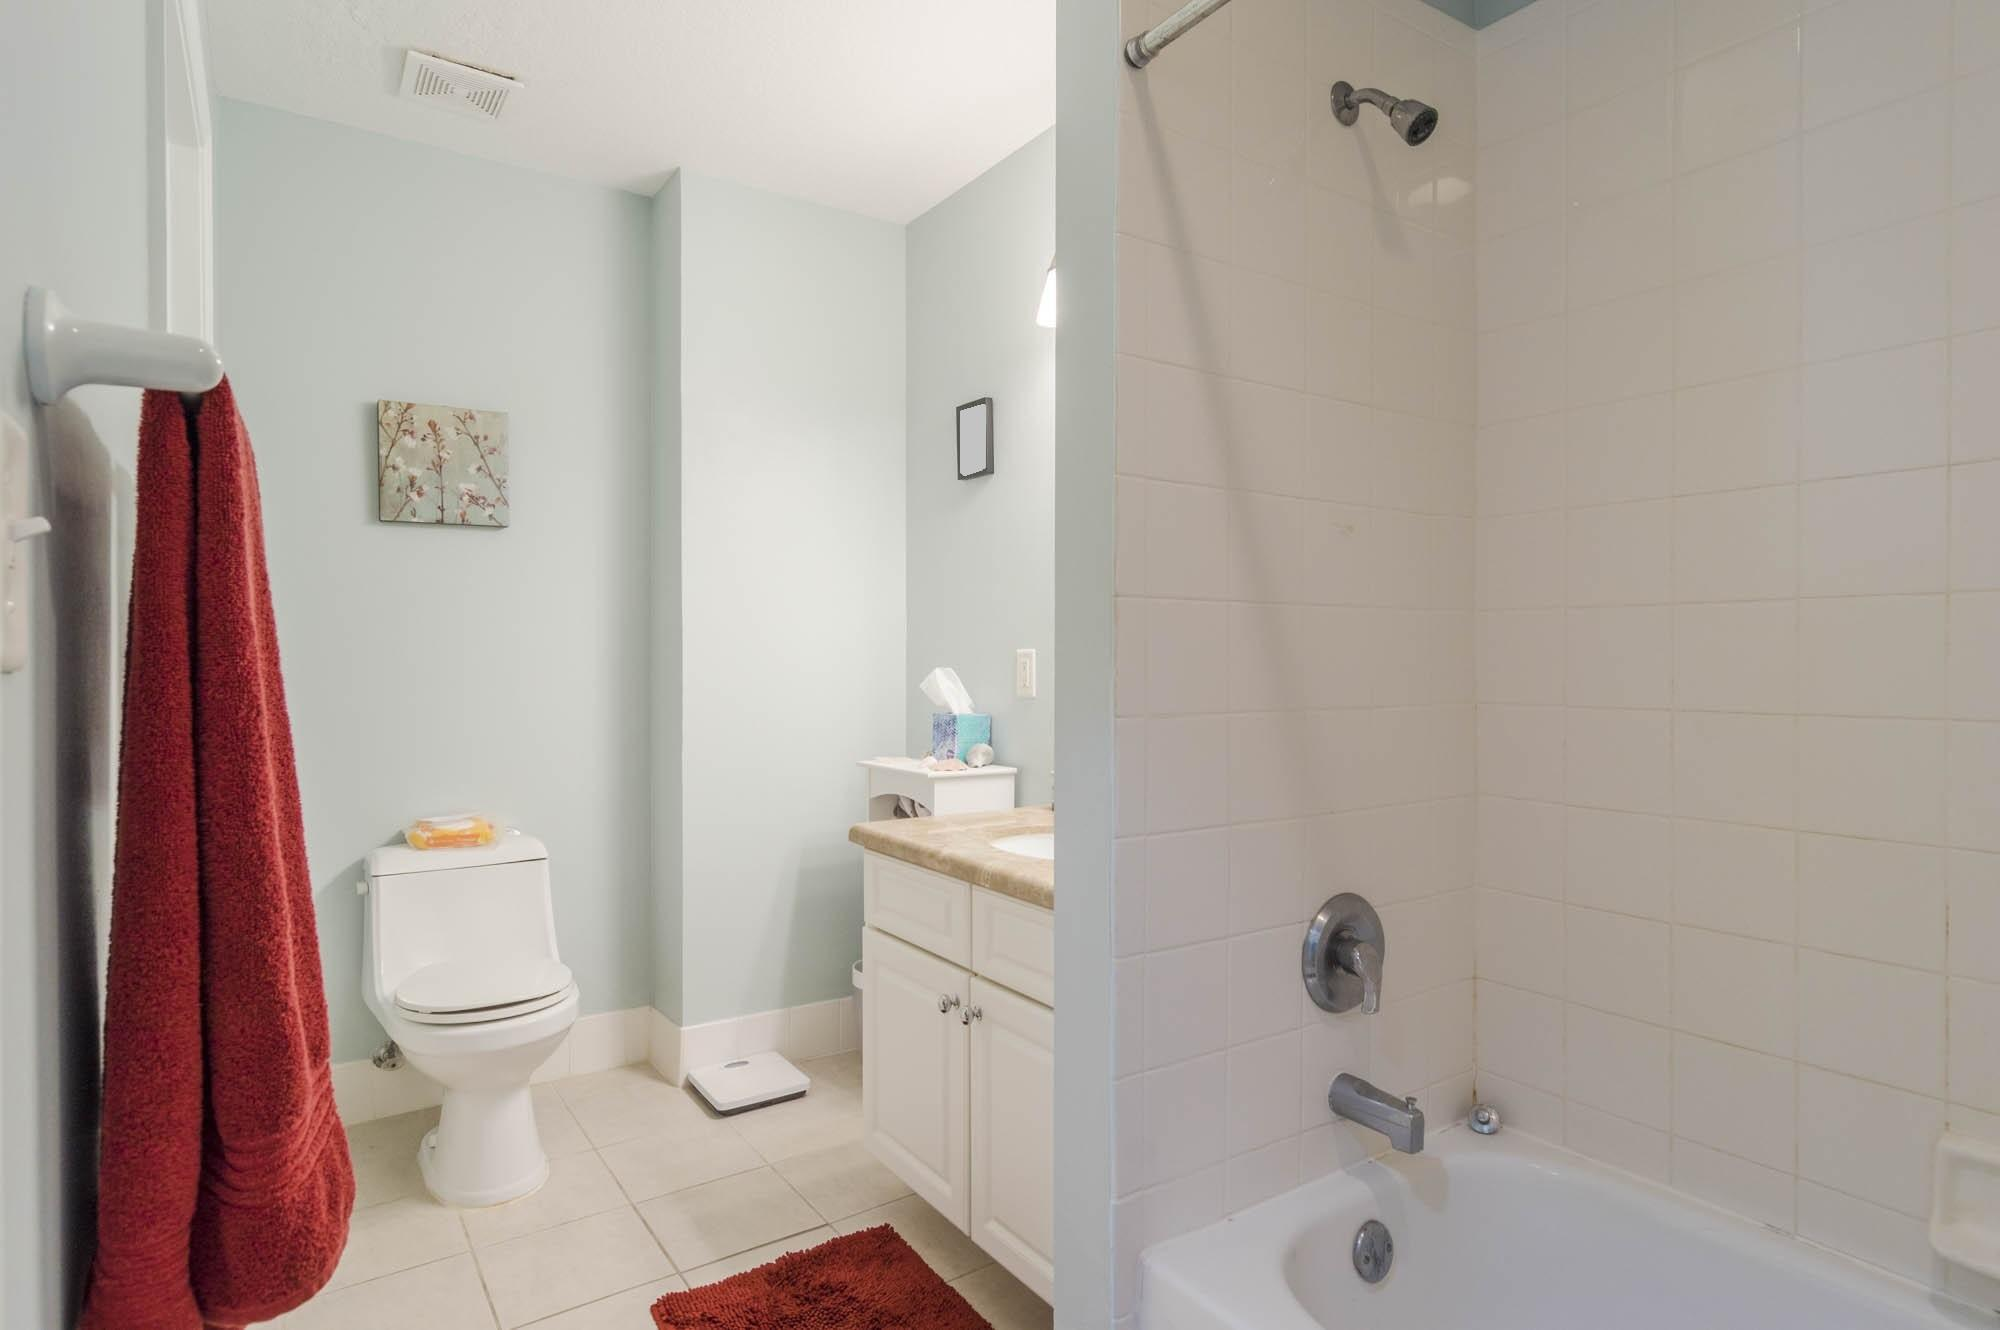 1153 Town Center Drive 302  - Abacoa Homes - photo 14